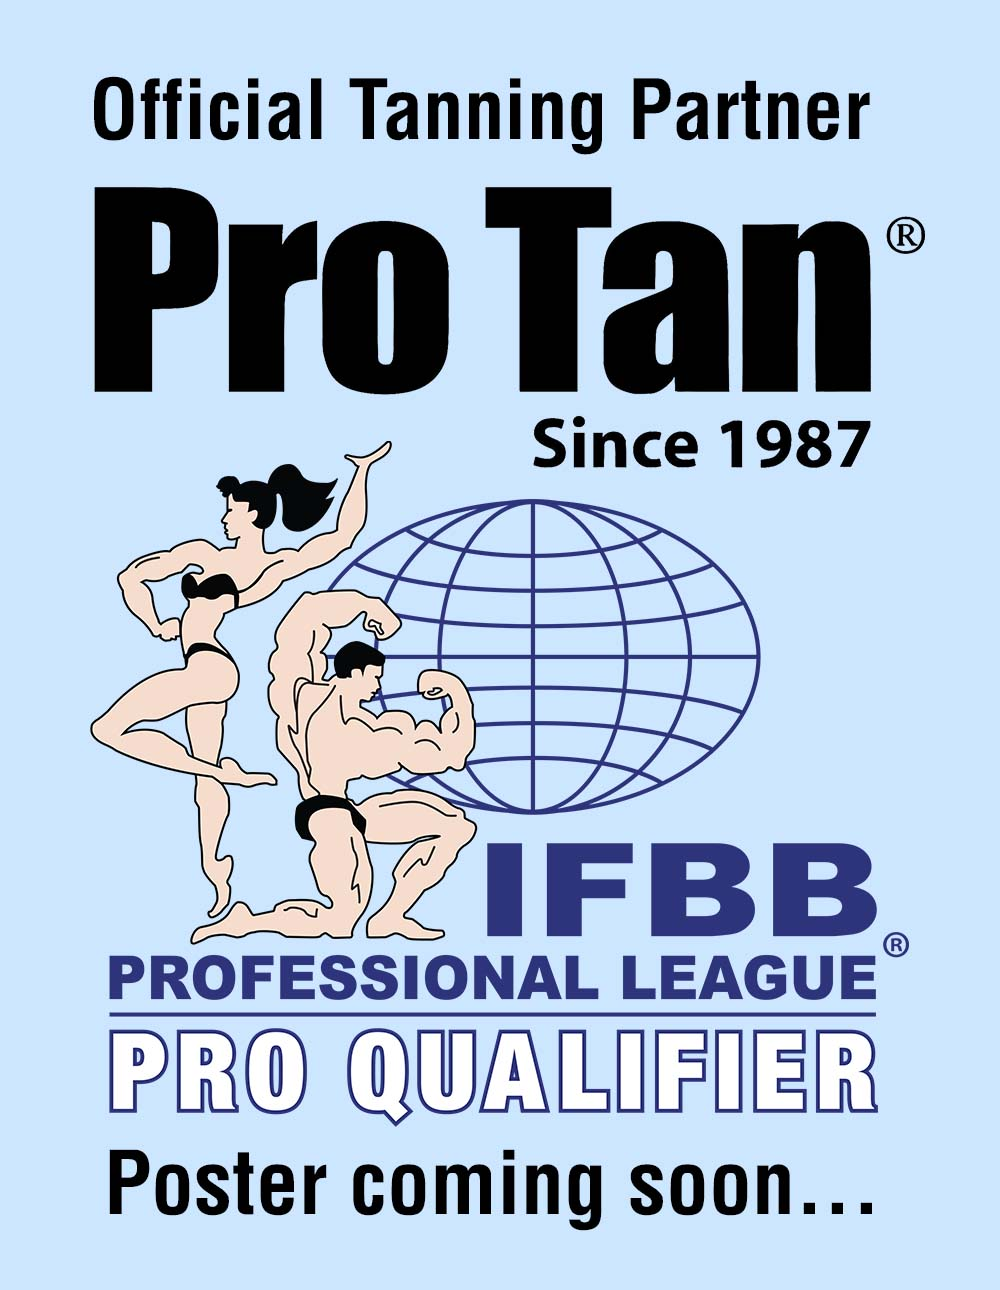 NPC Worldwide Pro Qualifier - Grand Prix of Rome